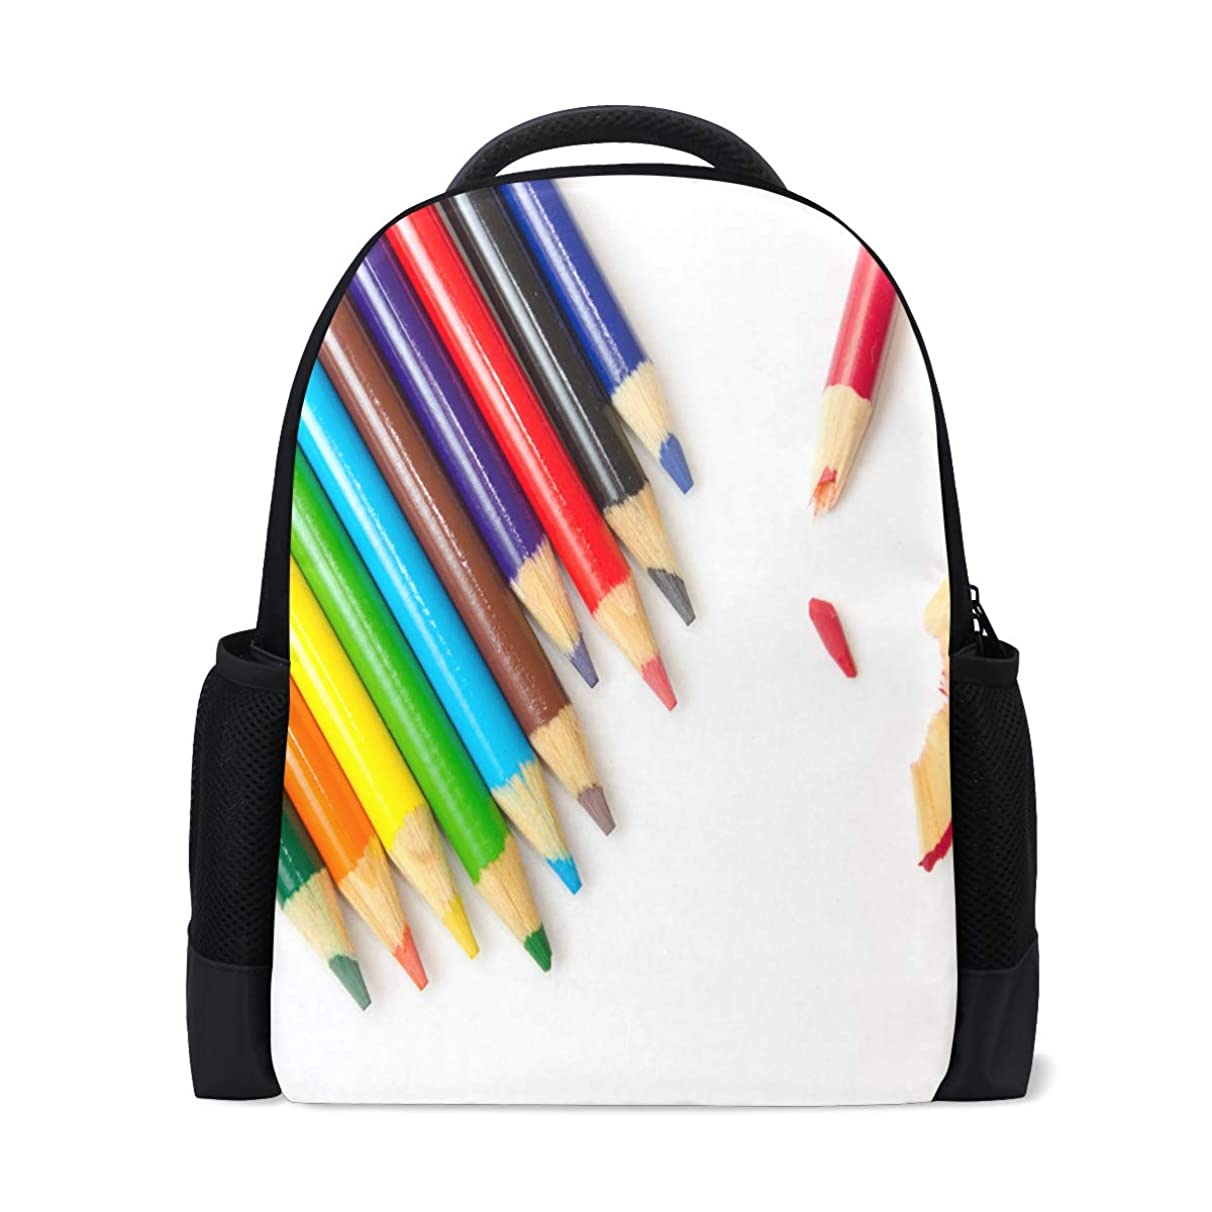 Backpack Colored Pencils Personalized Shoulders Bag Classic Lightweight Daypack for Men/Women